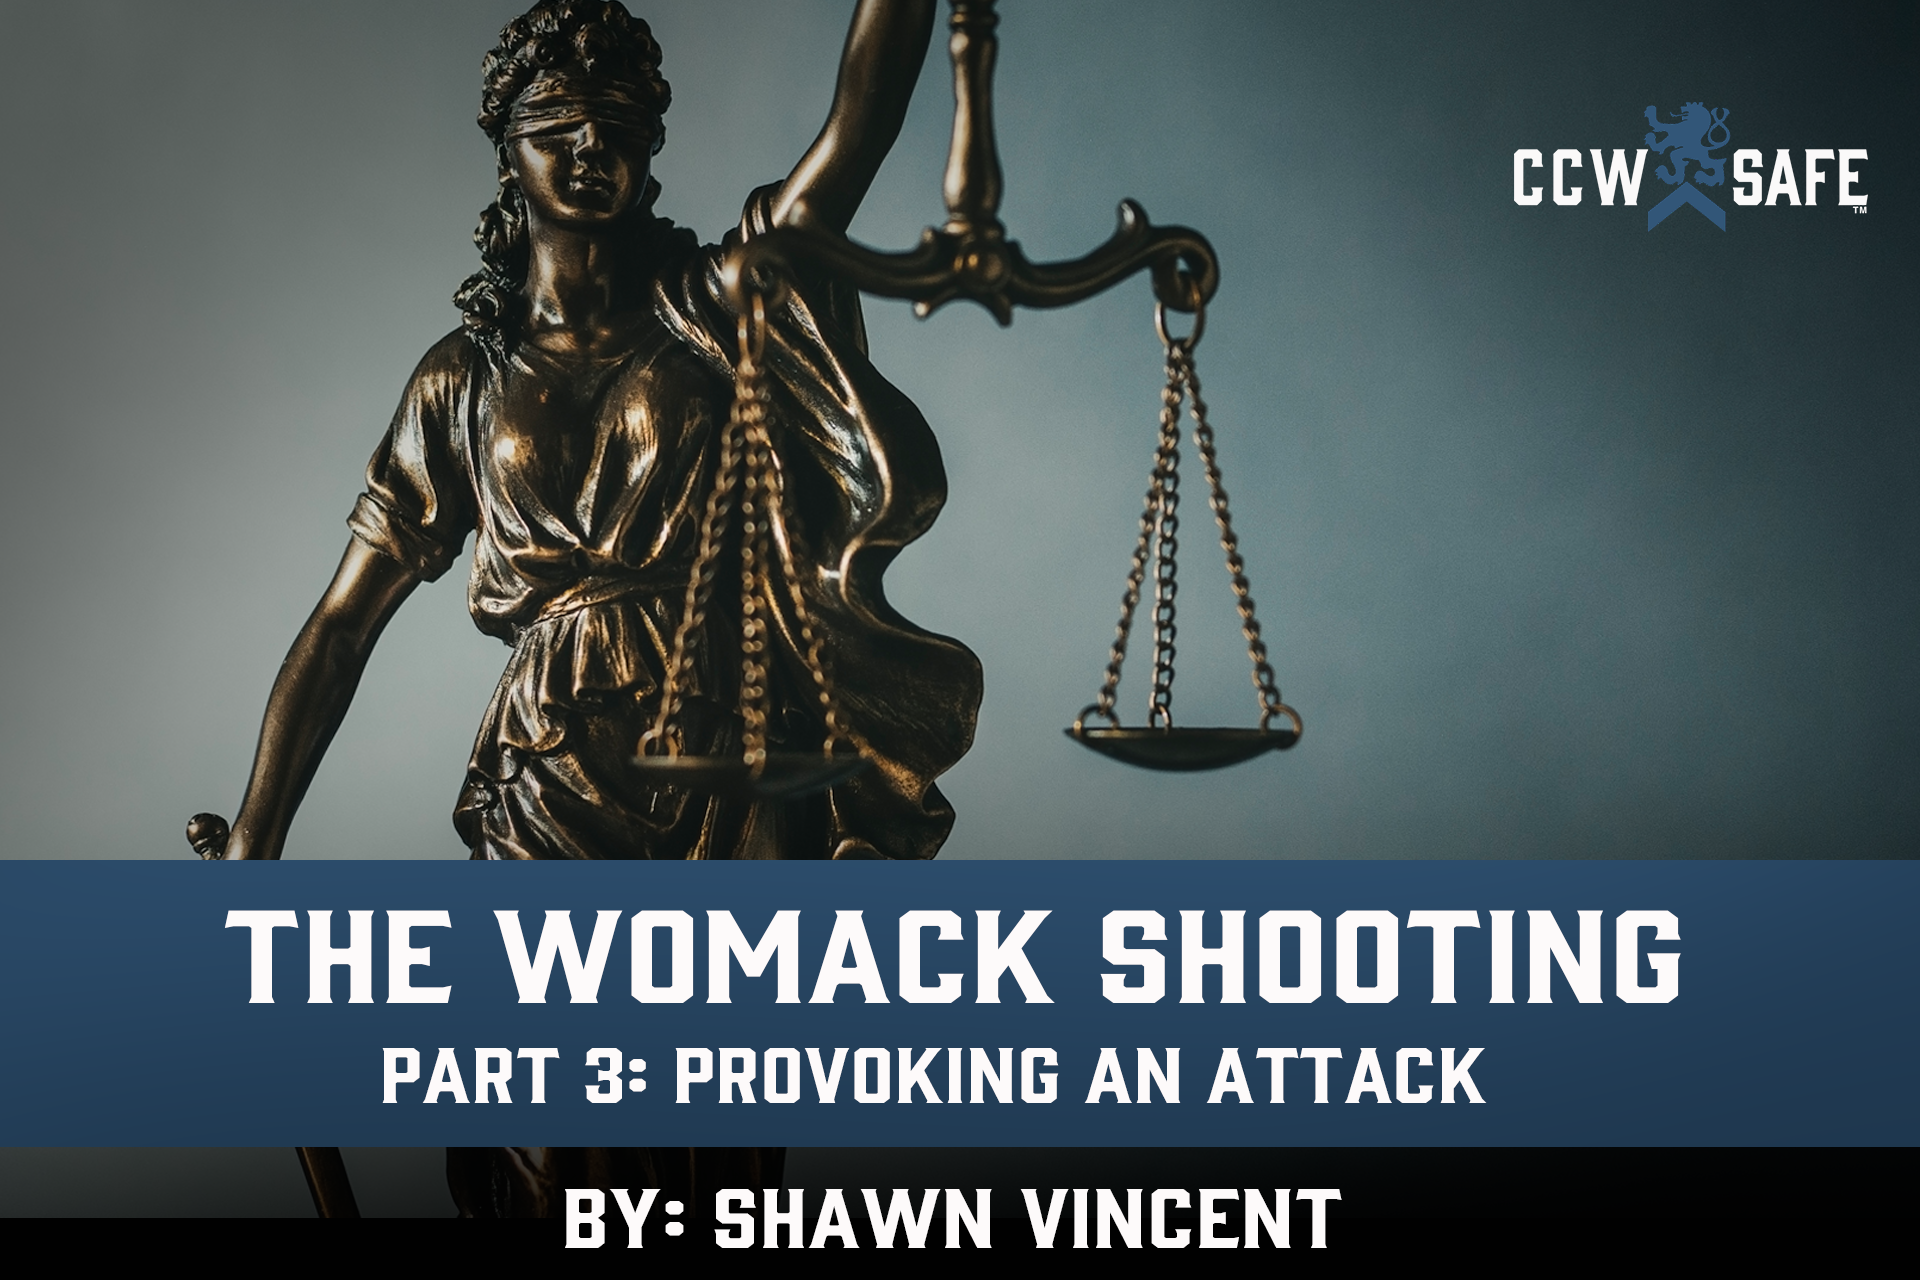 The Womack Shooting Part 3: Provoking an Attack